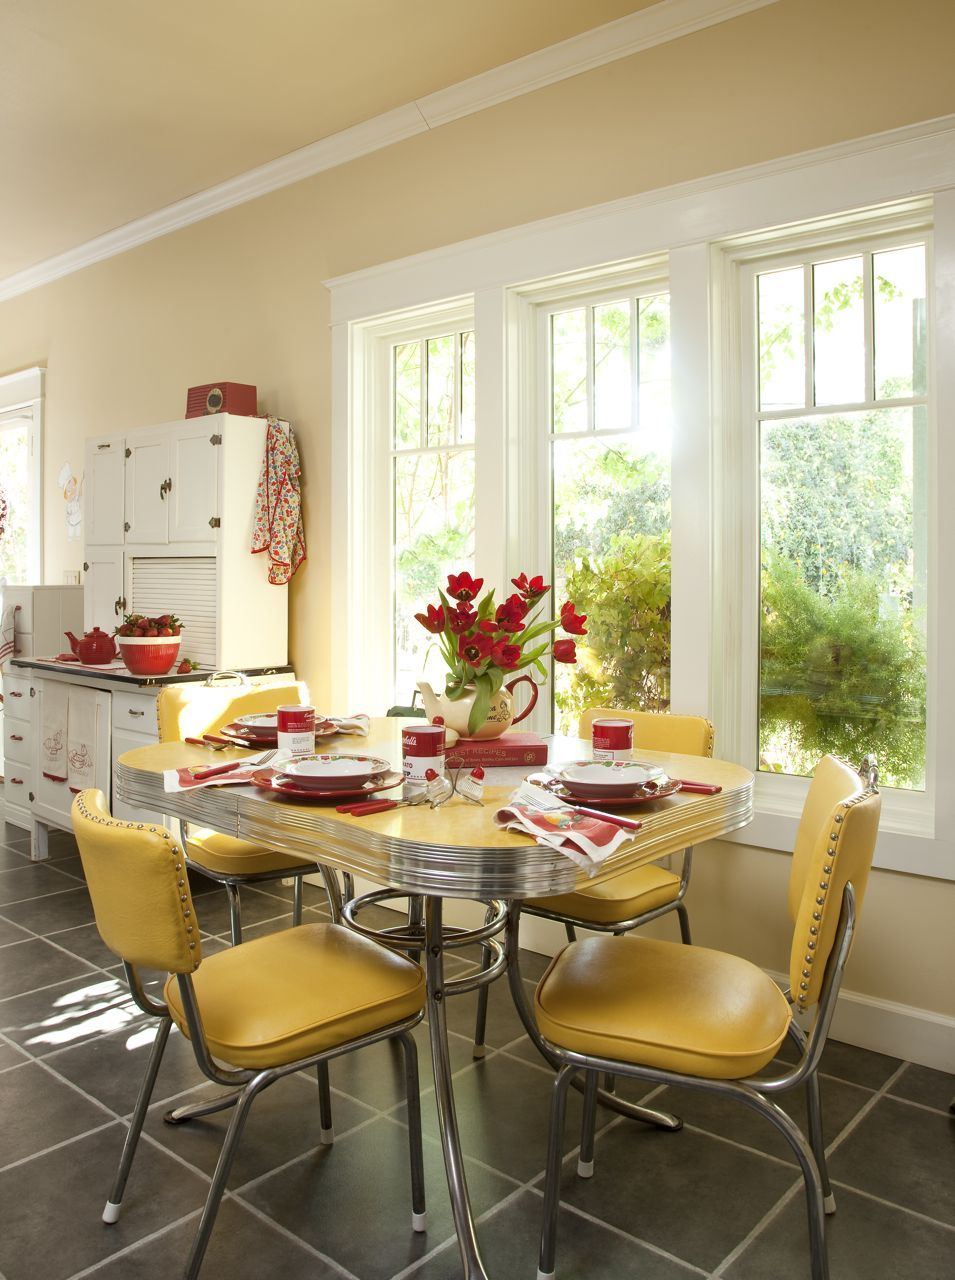 06 15 2016 Yellow Chrome Dining Room Set